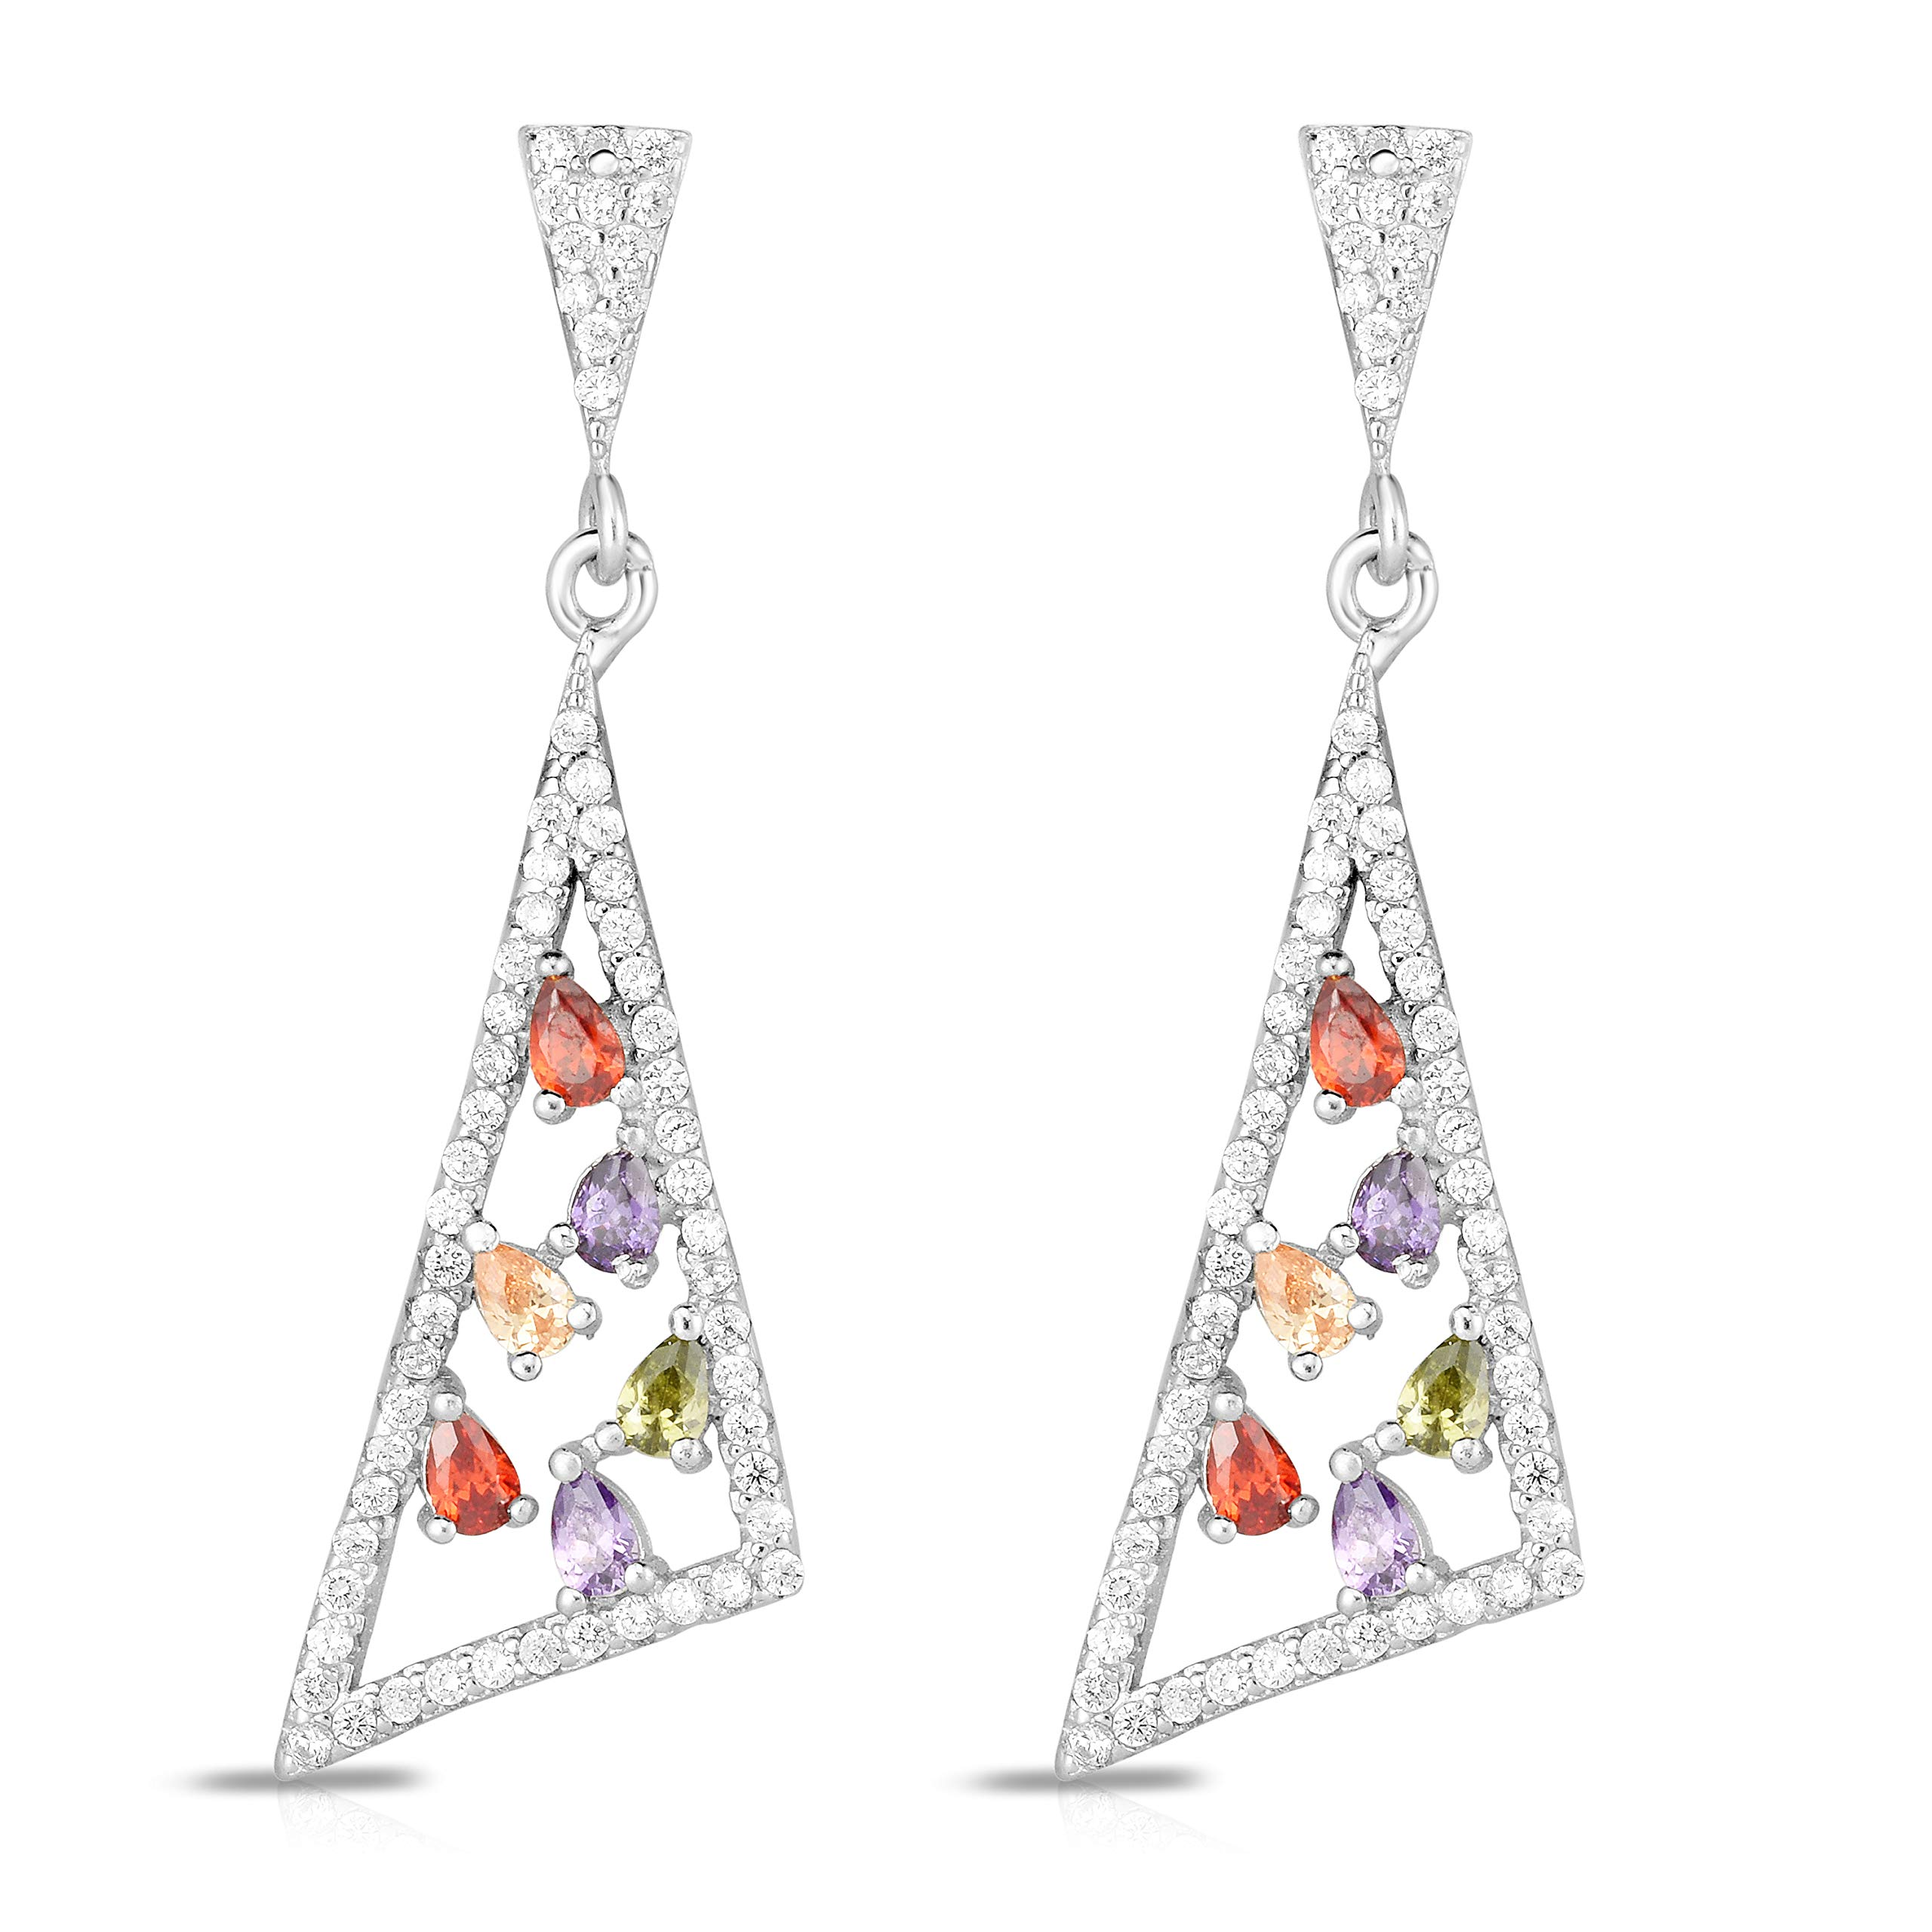 Unique Royal Jewelry 925 Sterling Silver White Cubic Zirconia and Multi-Color Glass Stones Triangle Shape Earrings. (Rhodium-Plated-Silver)